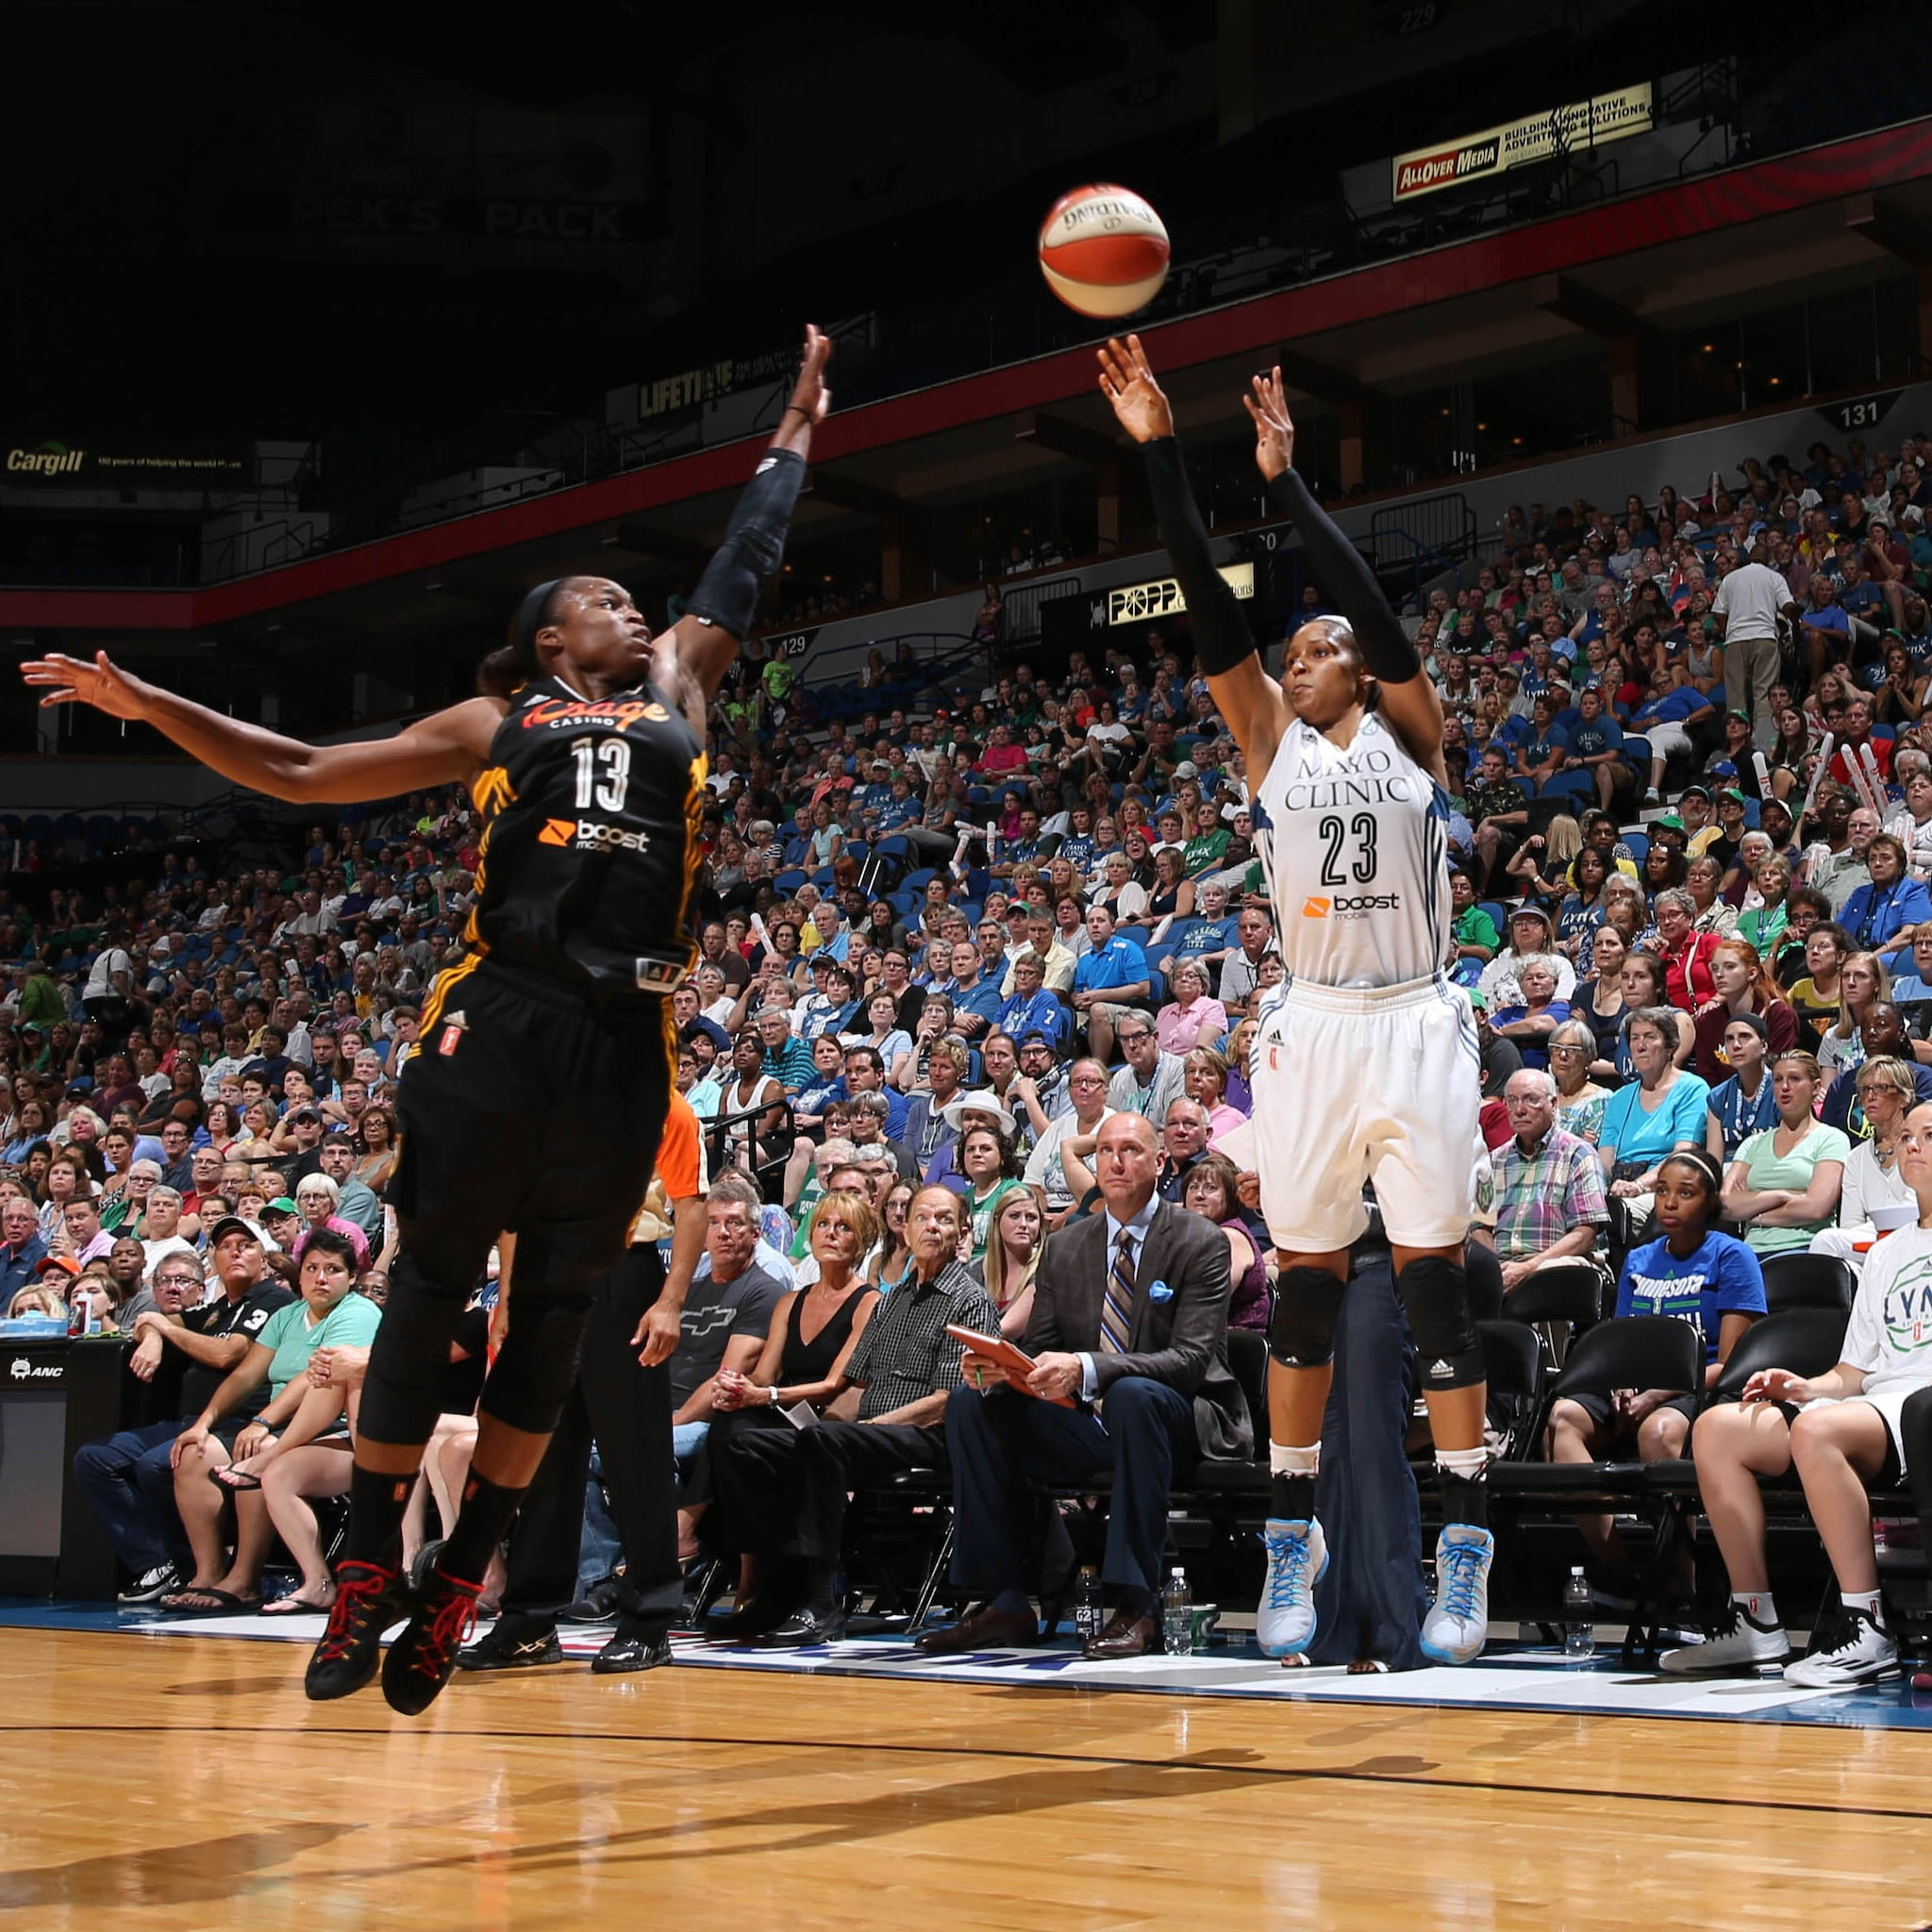 Despite nine early points, Lynx forward Maya Moore could only manage seven points through the final three quarters of the game.